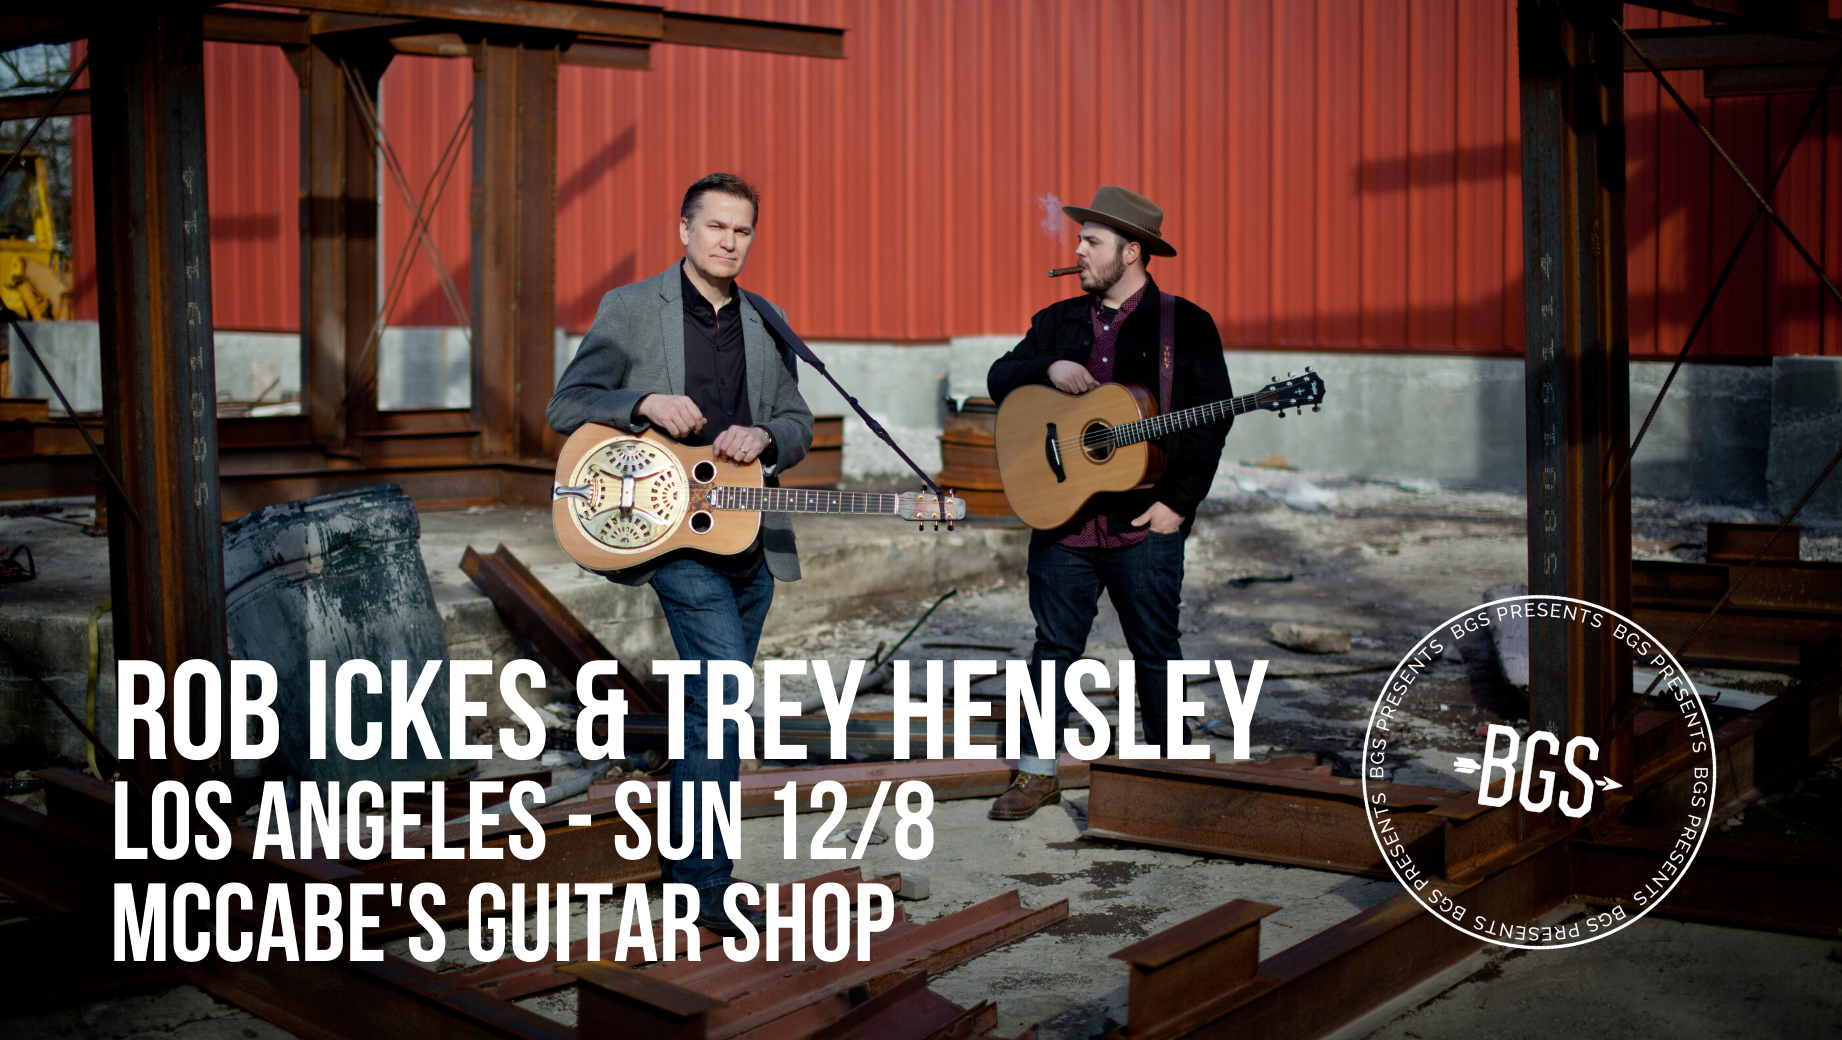 GIVEAWAY: Win tickets to Rob Ickes & Trey Hensley @ McCabe's Guitar Shop (LA) 12/8